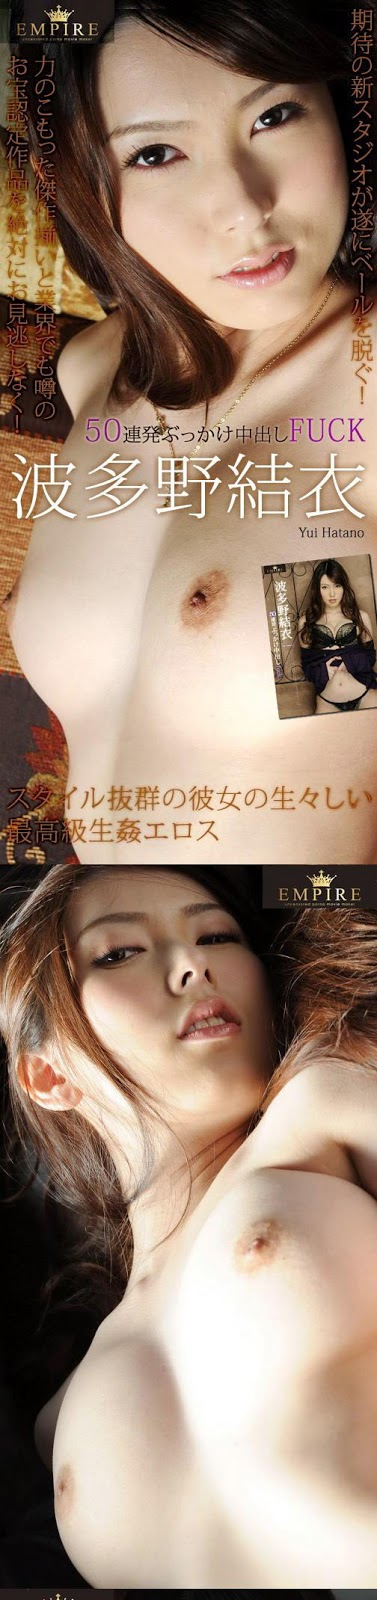 EMPIRE Vol.1 – 50 Bukkake & Creampie : Yui Hatano,Sex-Scandal.Us,Taiwan Celebrity Sex Scandal, Sex-Scandal.Us, hot sex scandal, nude girls, hot girls, Best Girl, Singapore Scandal, Korean Scandal, Japan Scandal